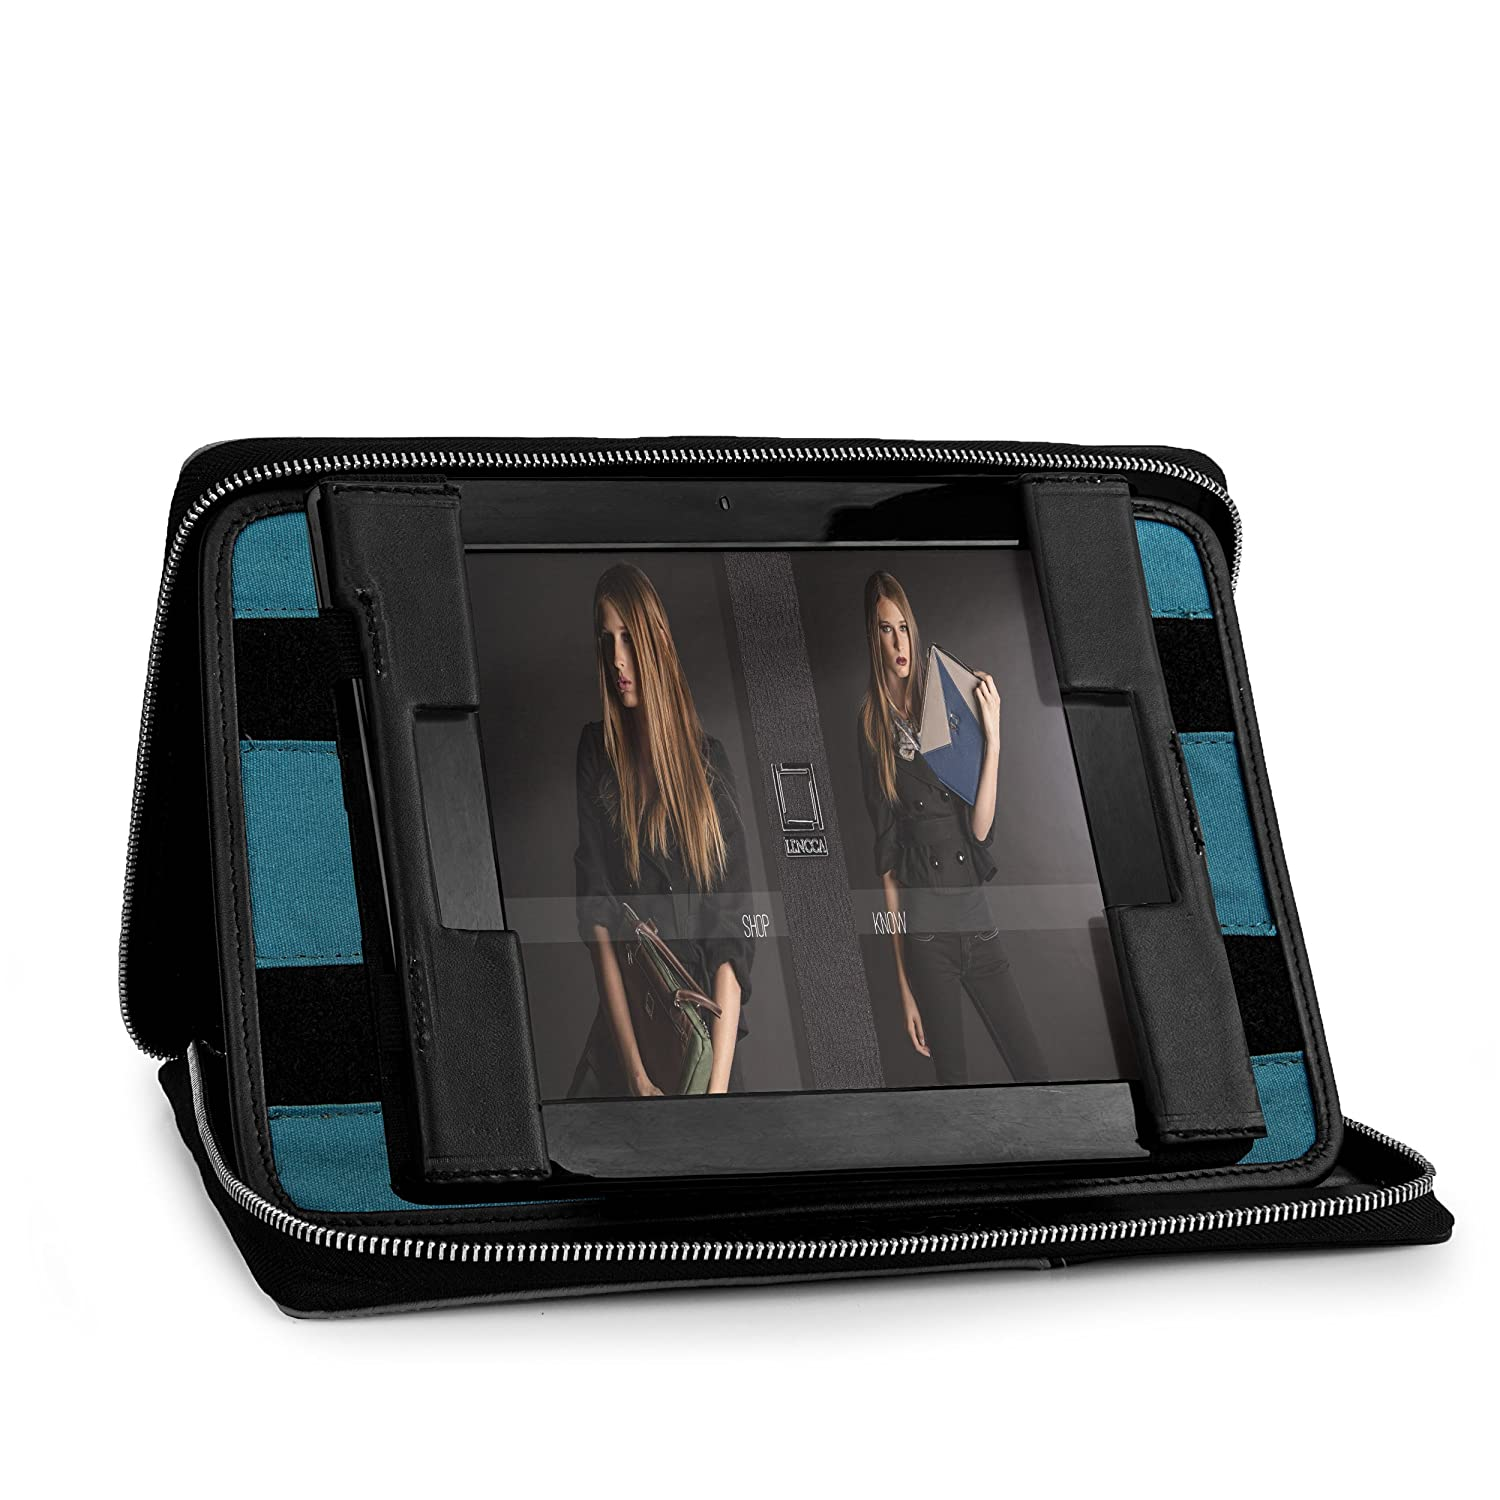 Lencca Brand Minky Collection Tablet Portfolio Cover for All Models & Generations of the Lenovo ThinkPad, IdeaTab Tablets with Universal Fit up to 11.25 Inches